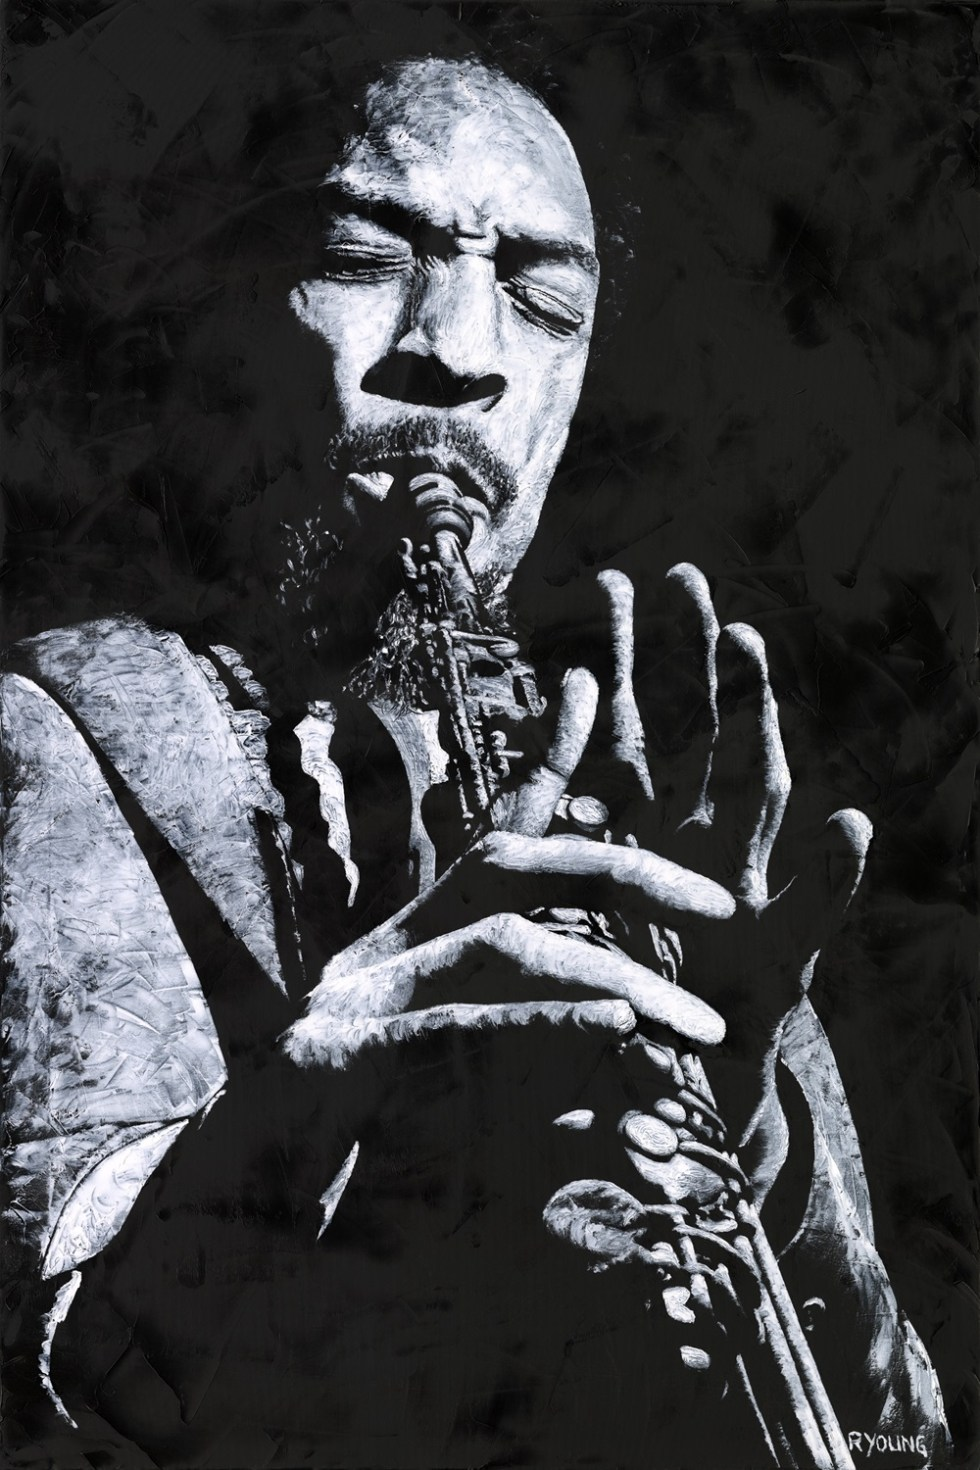 Musicians and Singers Art Gallery. Freedom in Sax - Sam Rivers. Fine art original oil painting on a 91cm x 61cm stretched canvas created in 2018 using a knife. Produced in cooperation with Michael Cuscuna and Mosaic Records. Original available via Headrow Gallery, 588 Harrogate Road, Alwoodley, Leeds , West Yorkshire LS17 8DP. Contact Max on 07969575747. Framed = £1,495